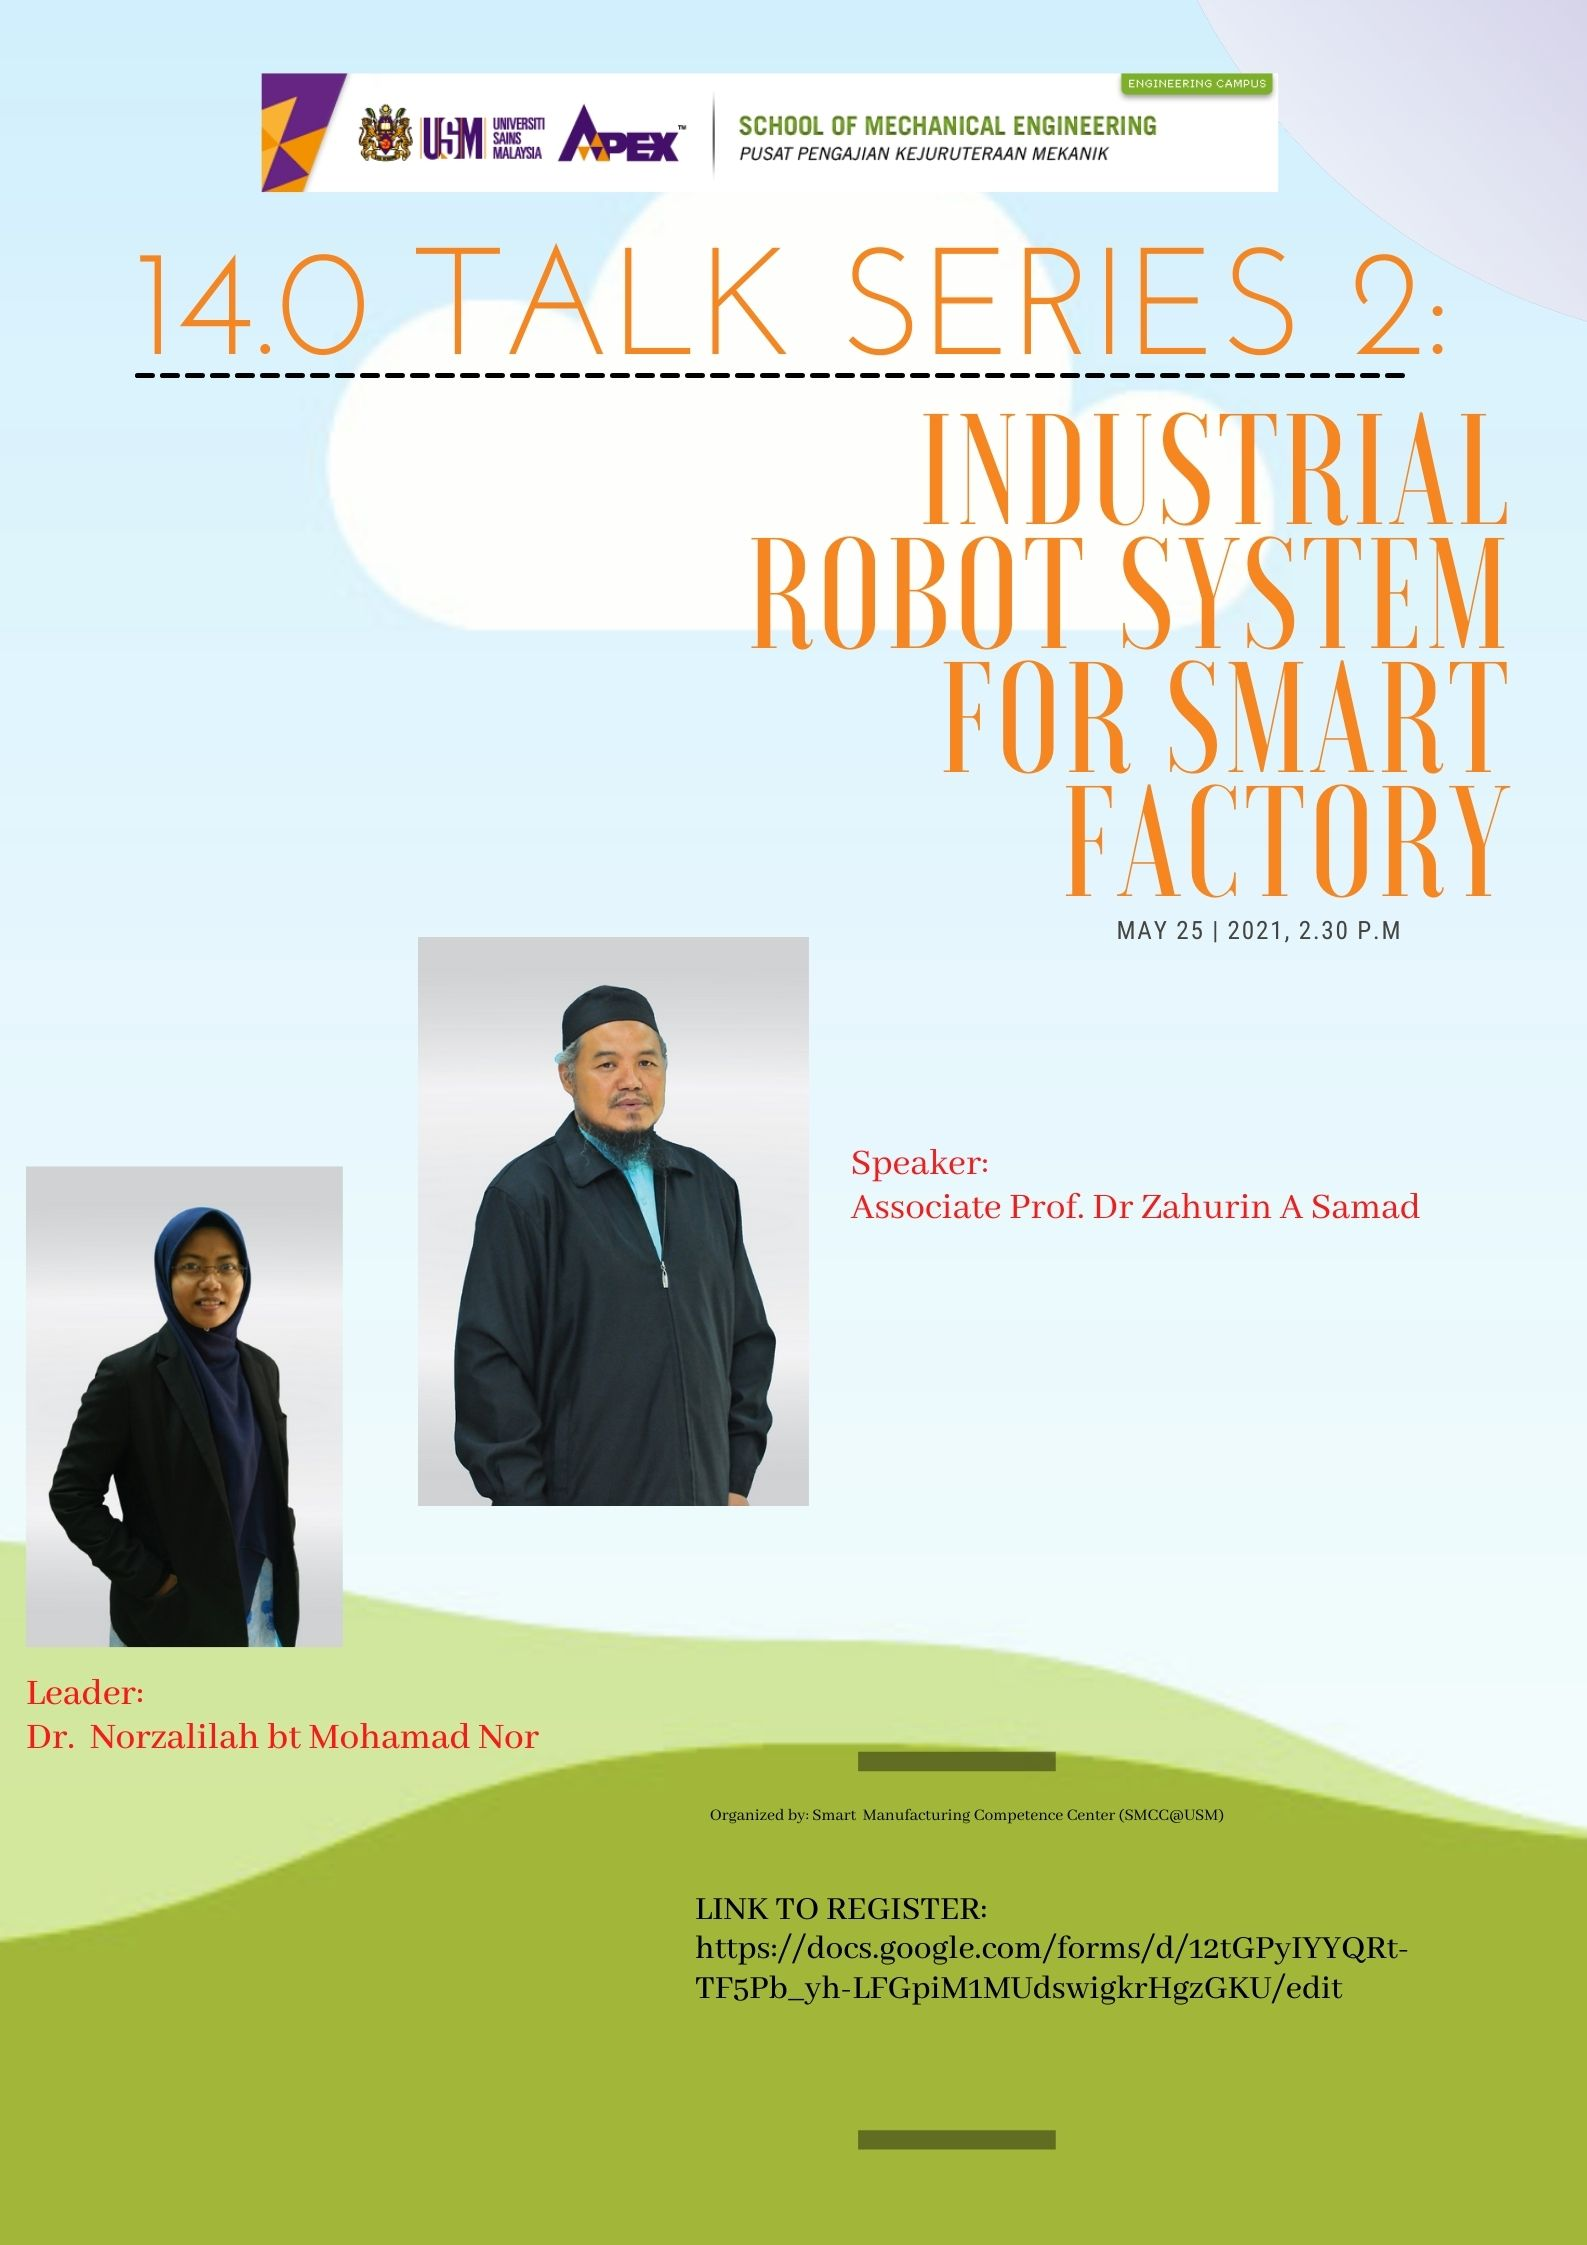 Talk Series 2 Industrial Robot System for Smart Factory